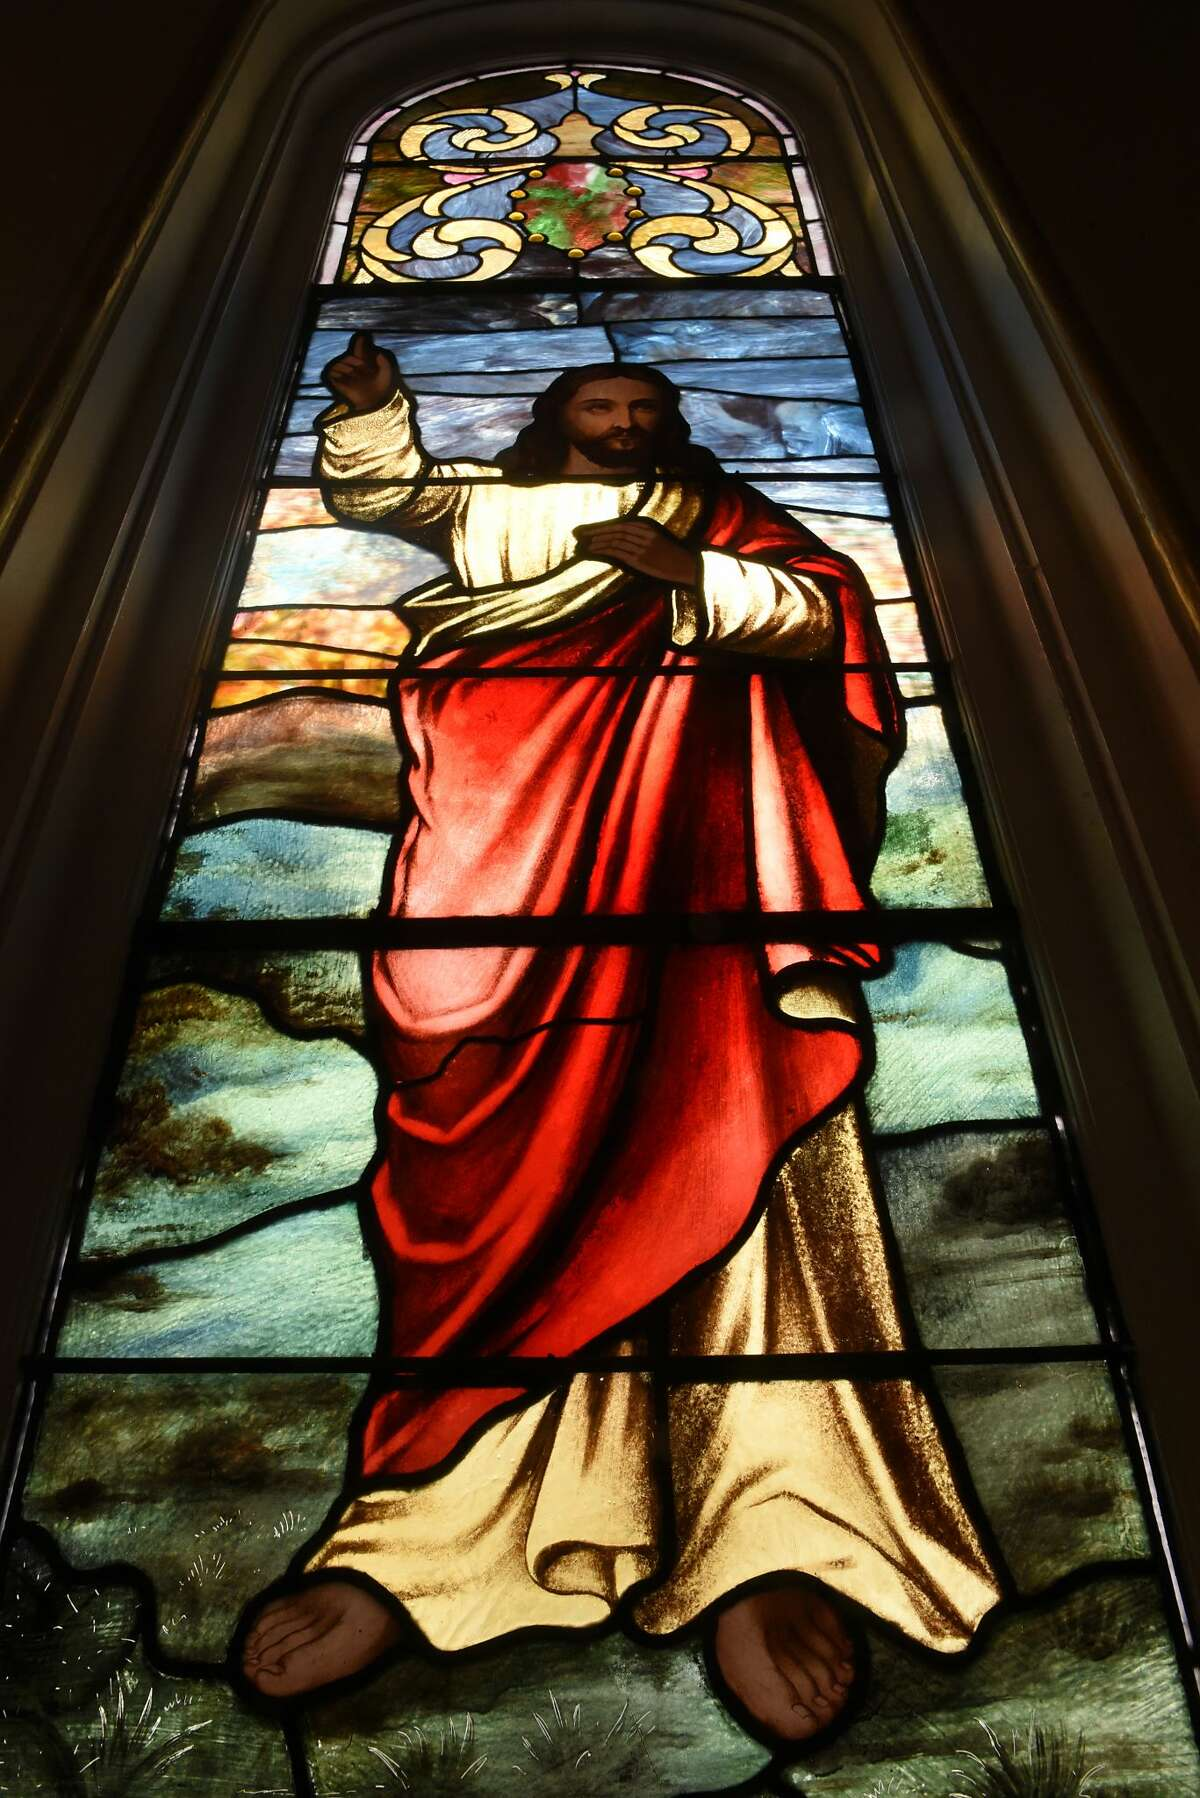 Stained glass window panel depicting Jesus at Gilead Lutheran Church on Wednesday, March 4, 2020 in Troy, N.Y. (Lori Van Buren/Times Union)